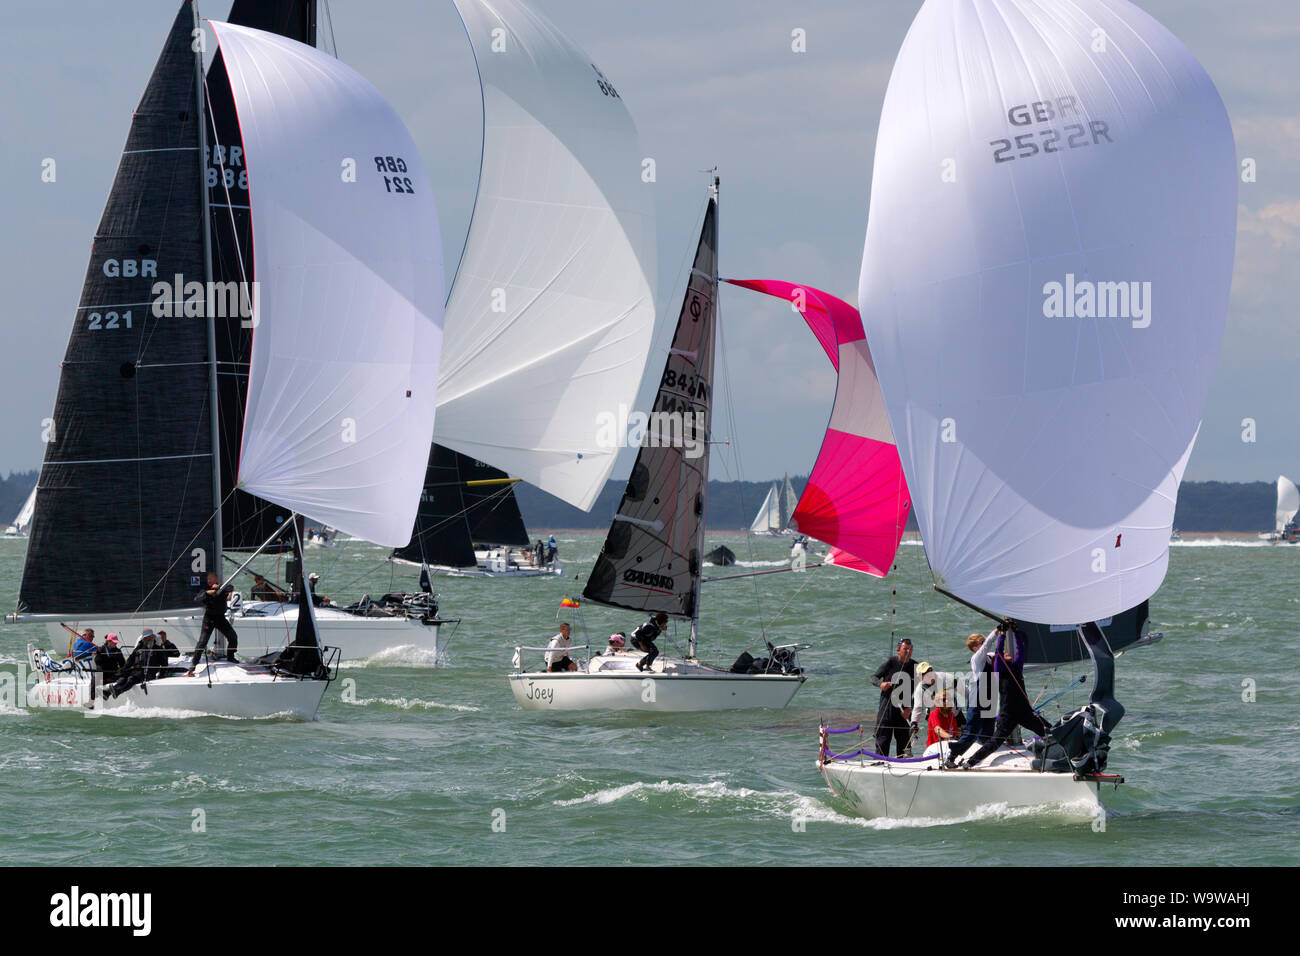 Rorc Stock Photos & Rorc Stock Images - Alamy